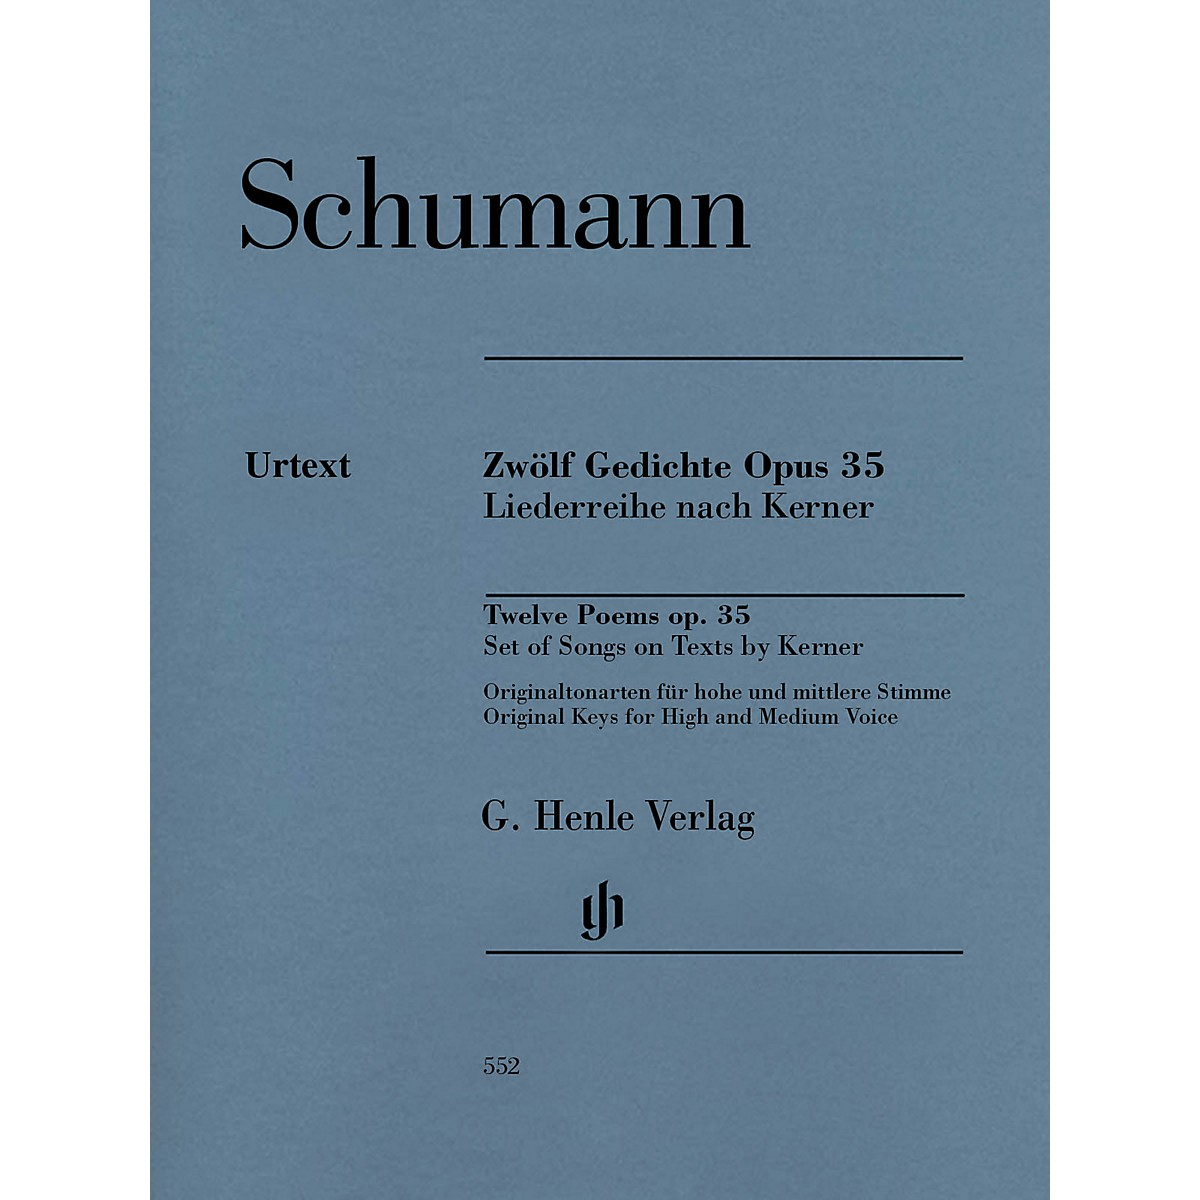 G. Henle Verlag 12 Poems Op. 35, Set of Songs on Texts by Kerner Henle Music Softcover by Schumann Edited by Kazuko Ozawa